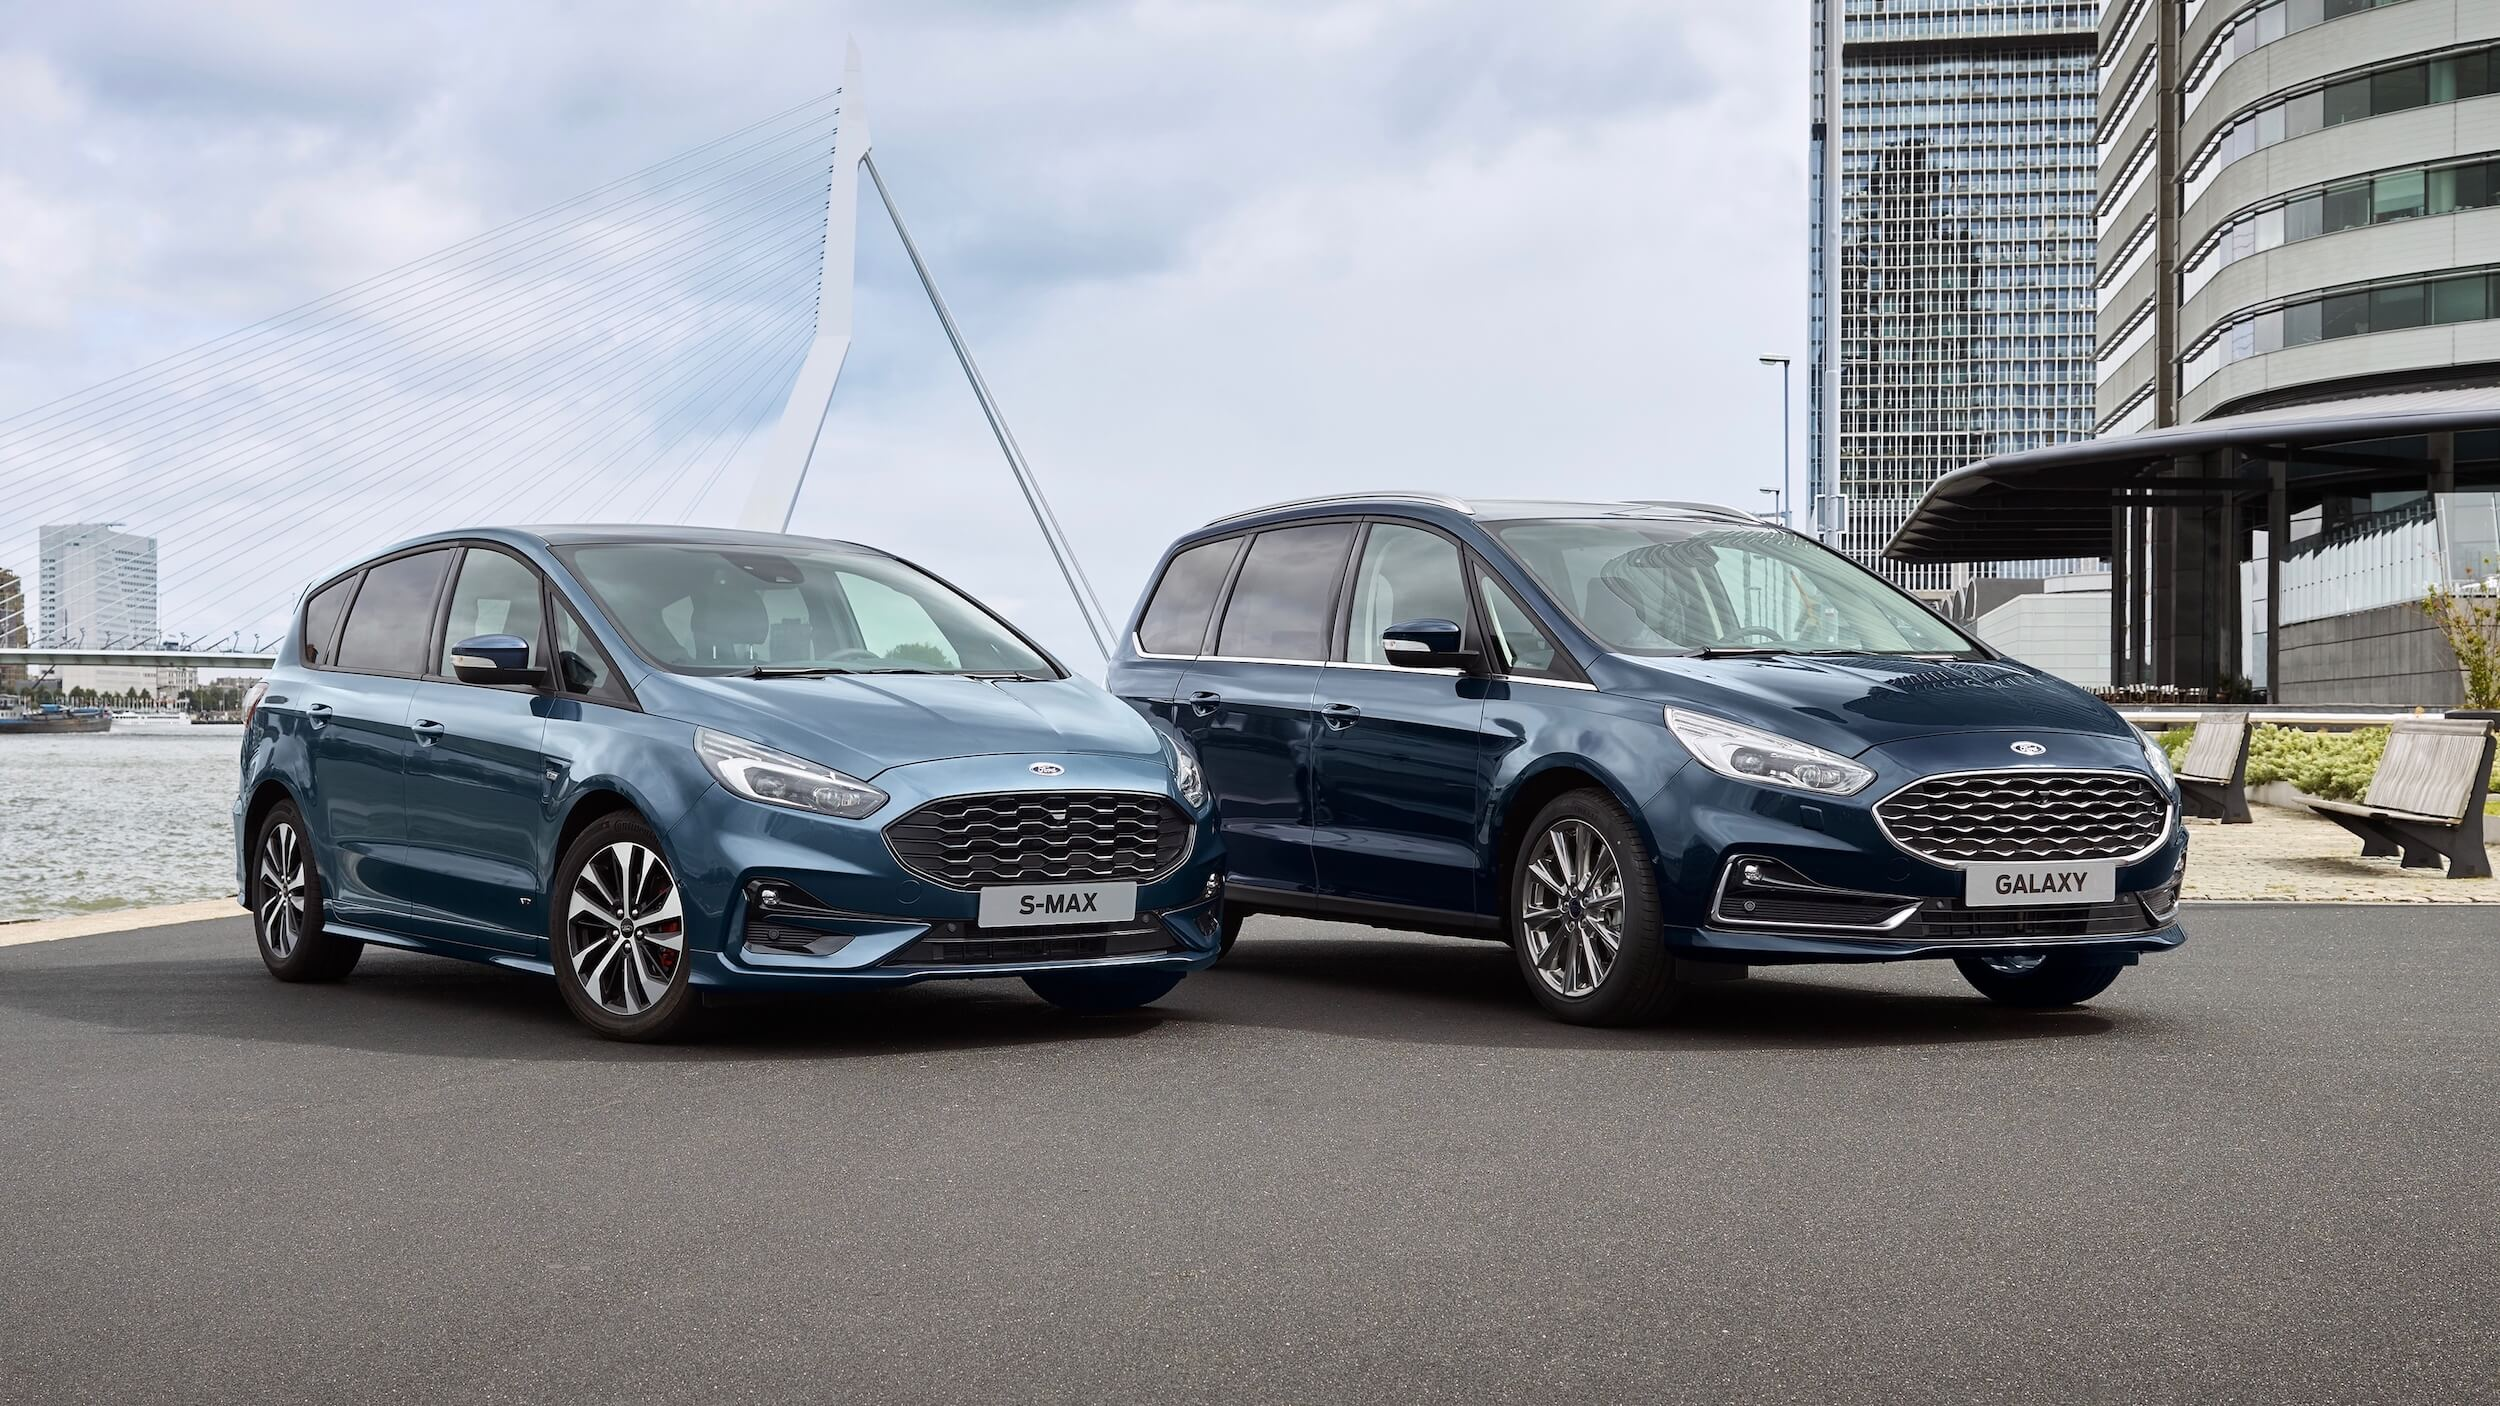 Ford S Max versus Galaxy